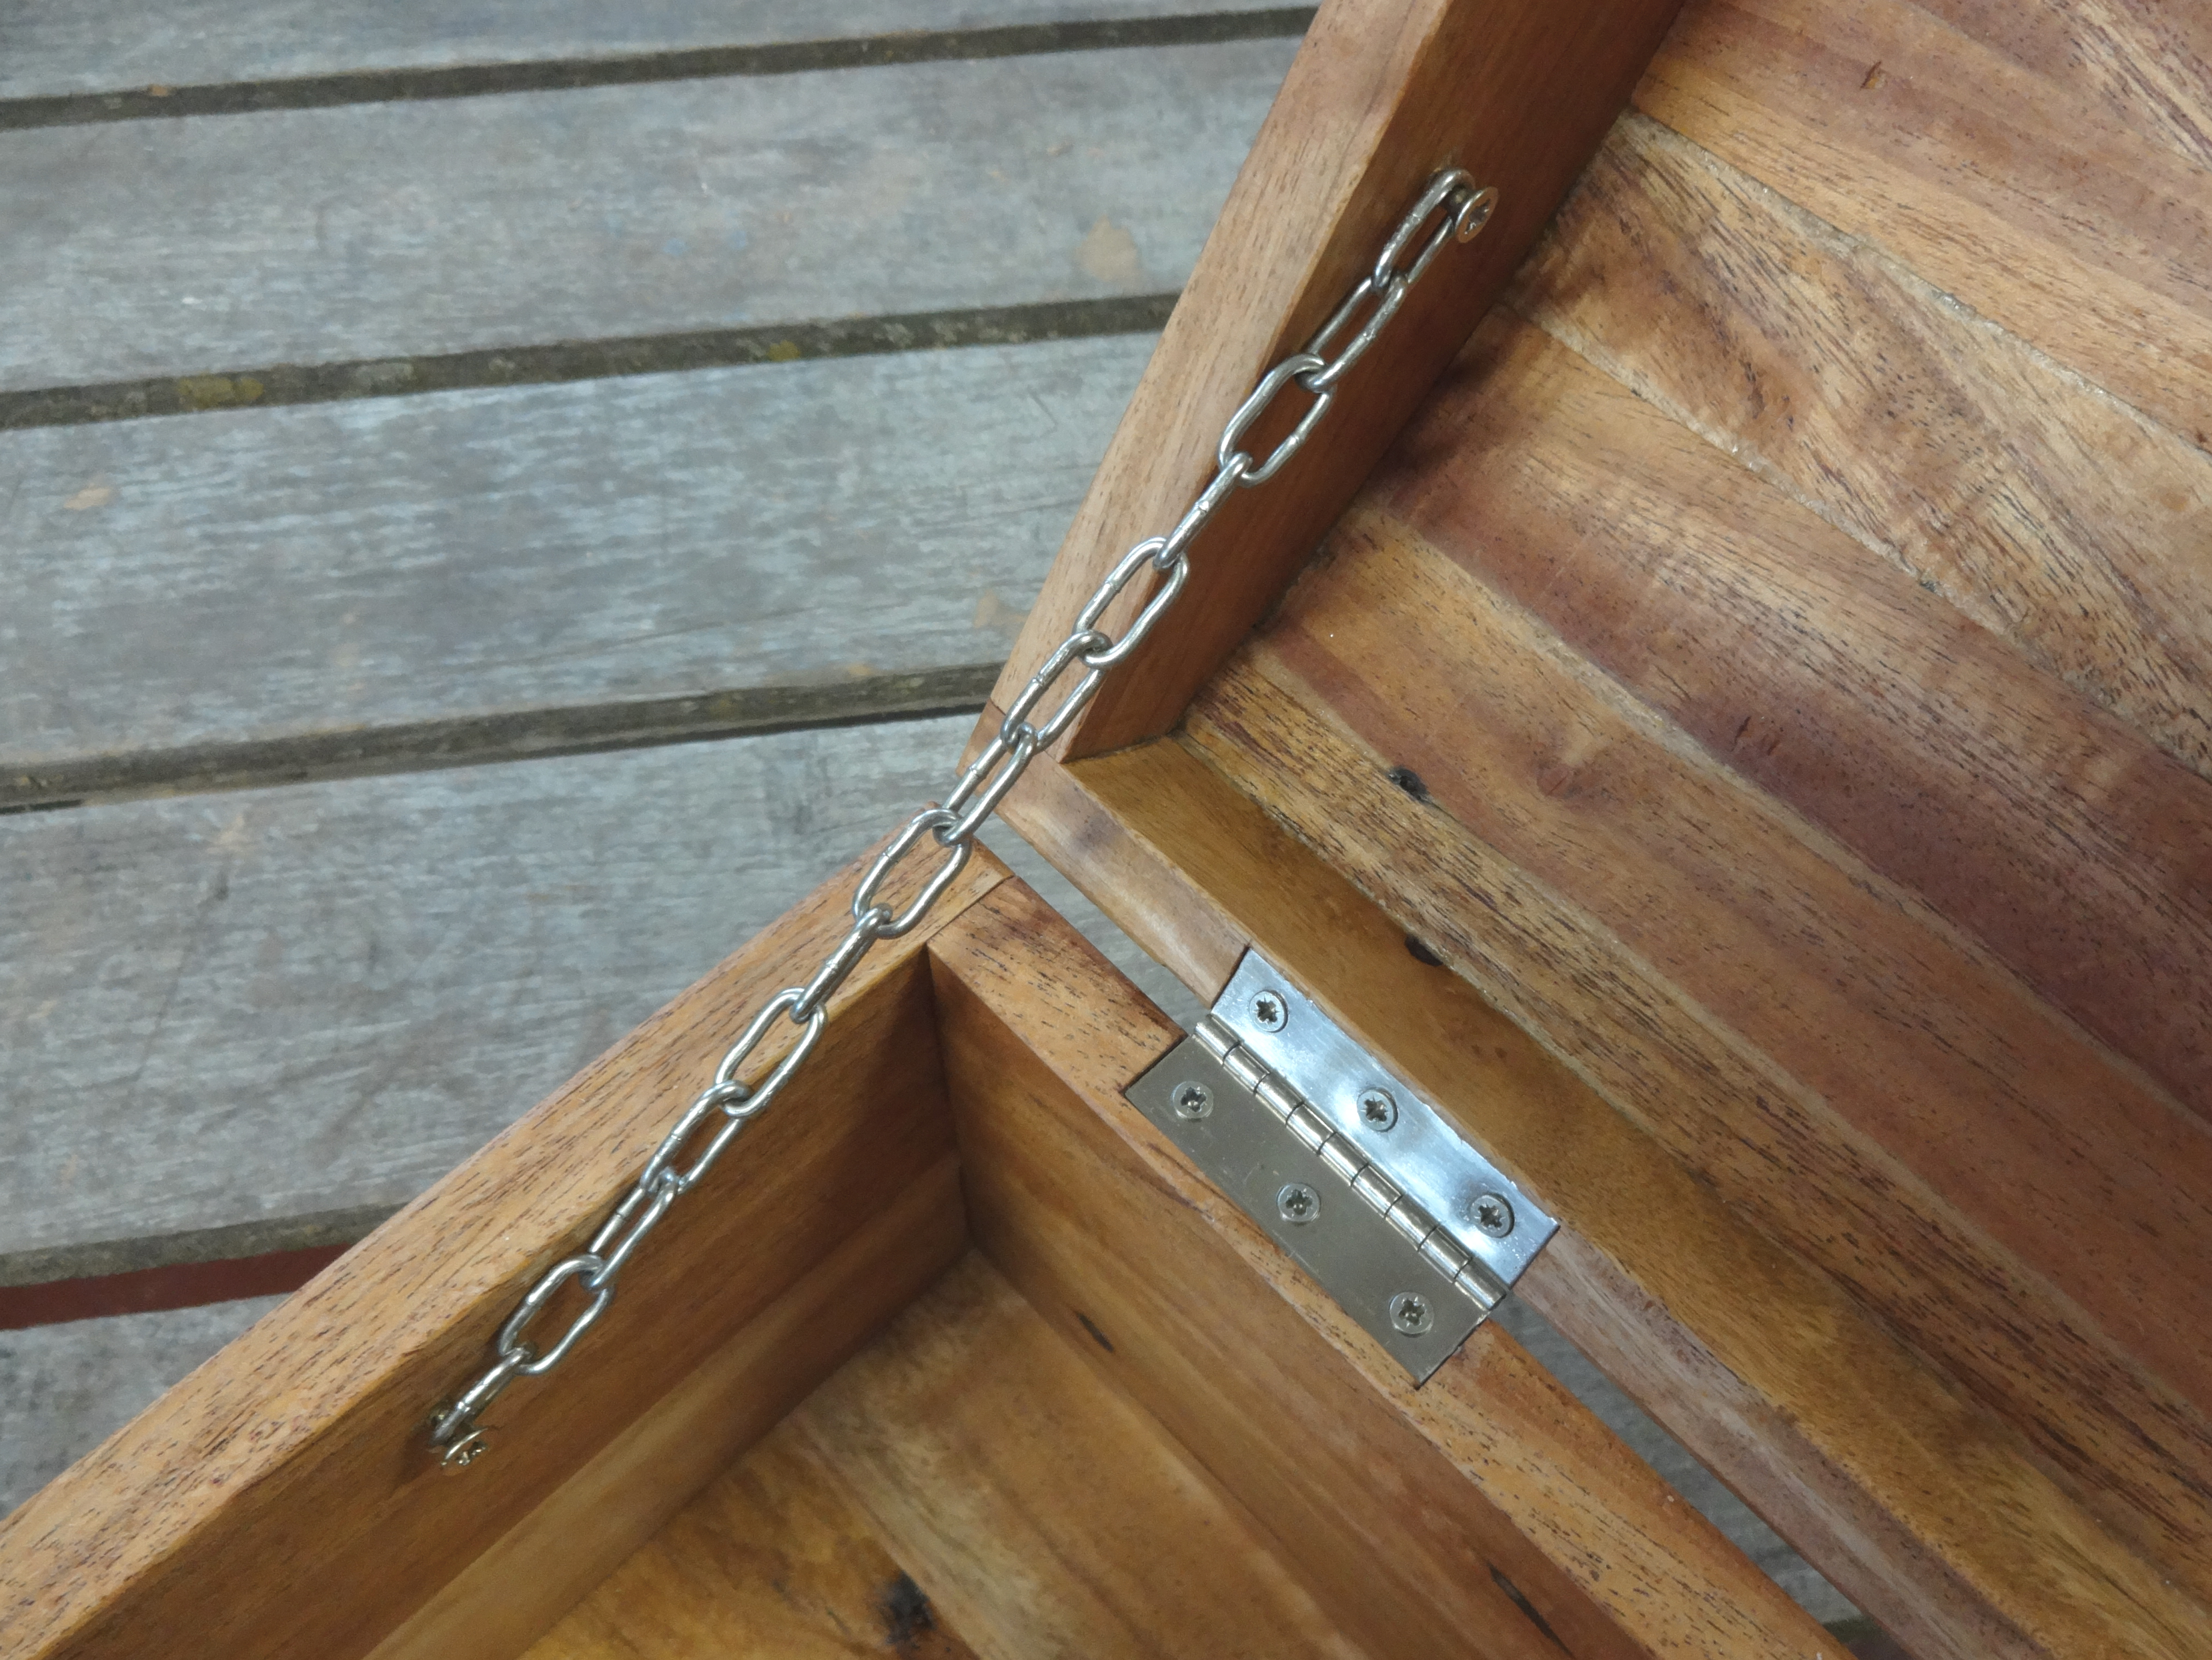 Picture of Installing Hinges, Clasp and Chain